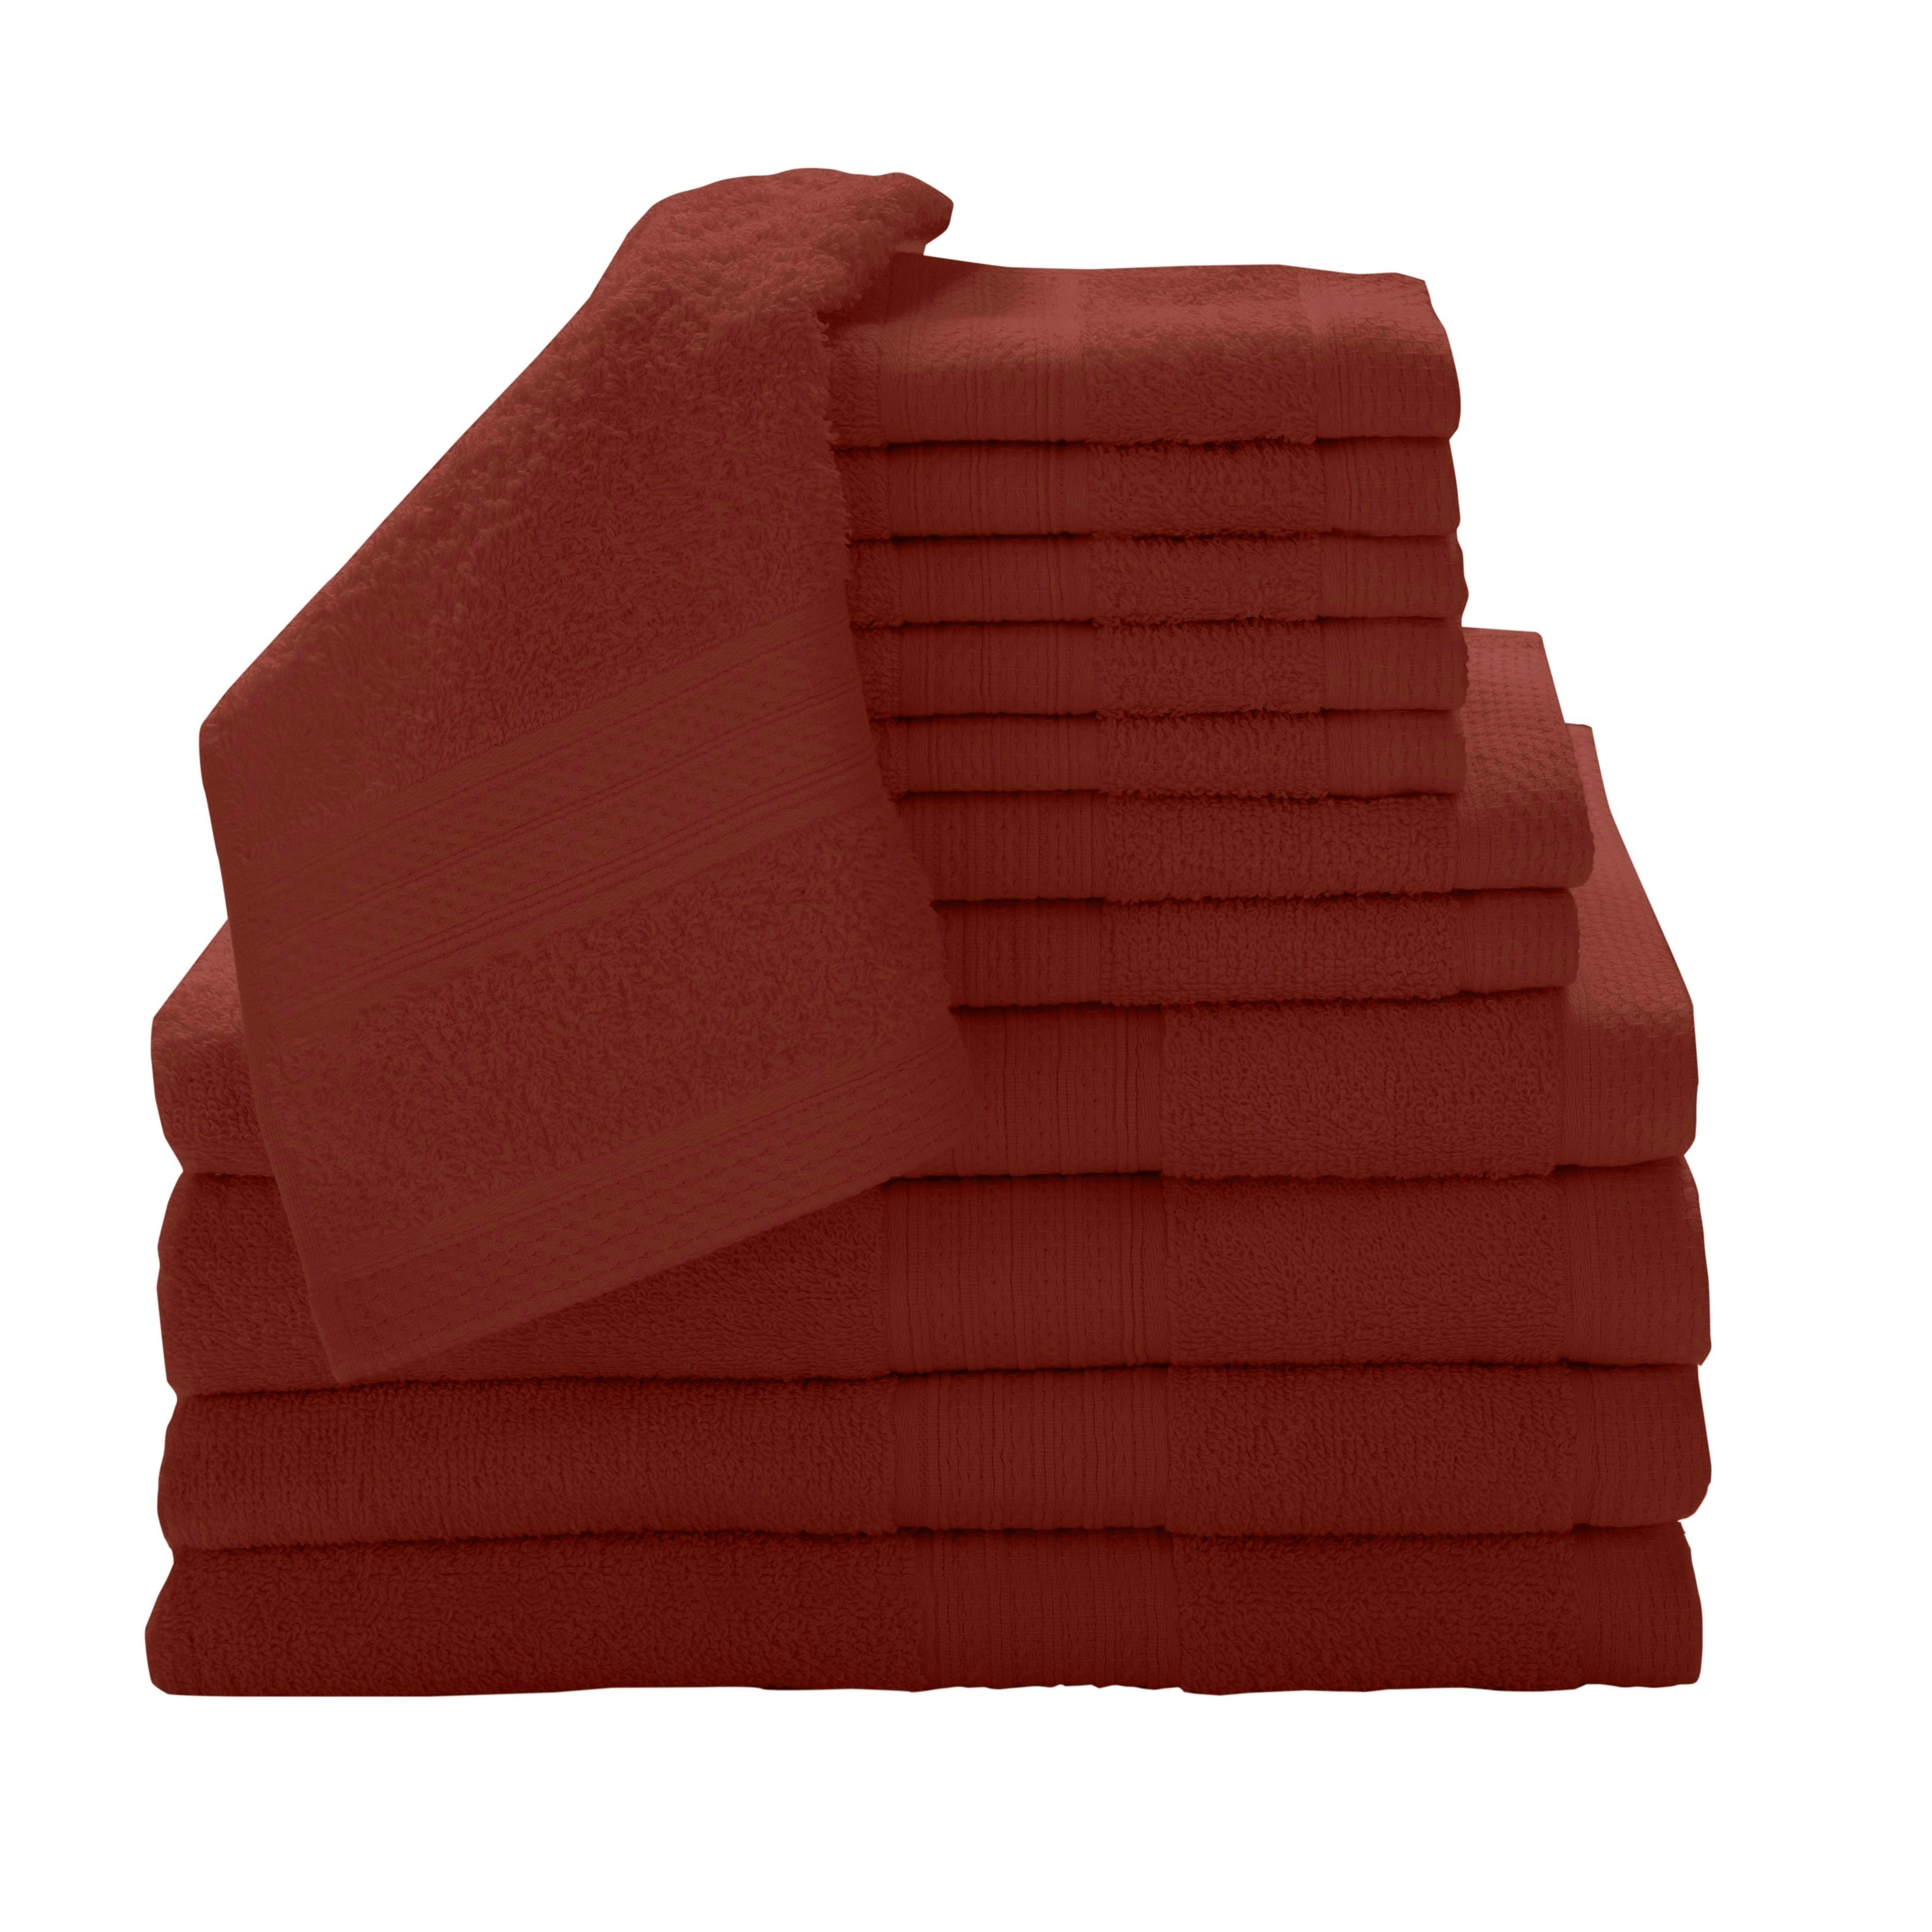 Luxury 100 Percent Cotton 12 Piece Towel Set With Bath Sheets Overstock 8891936